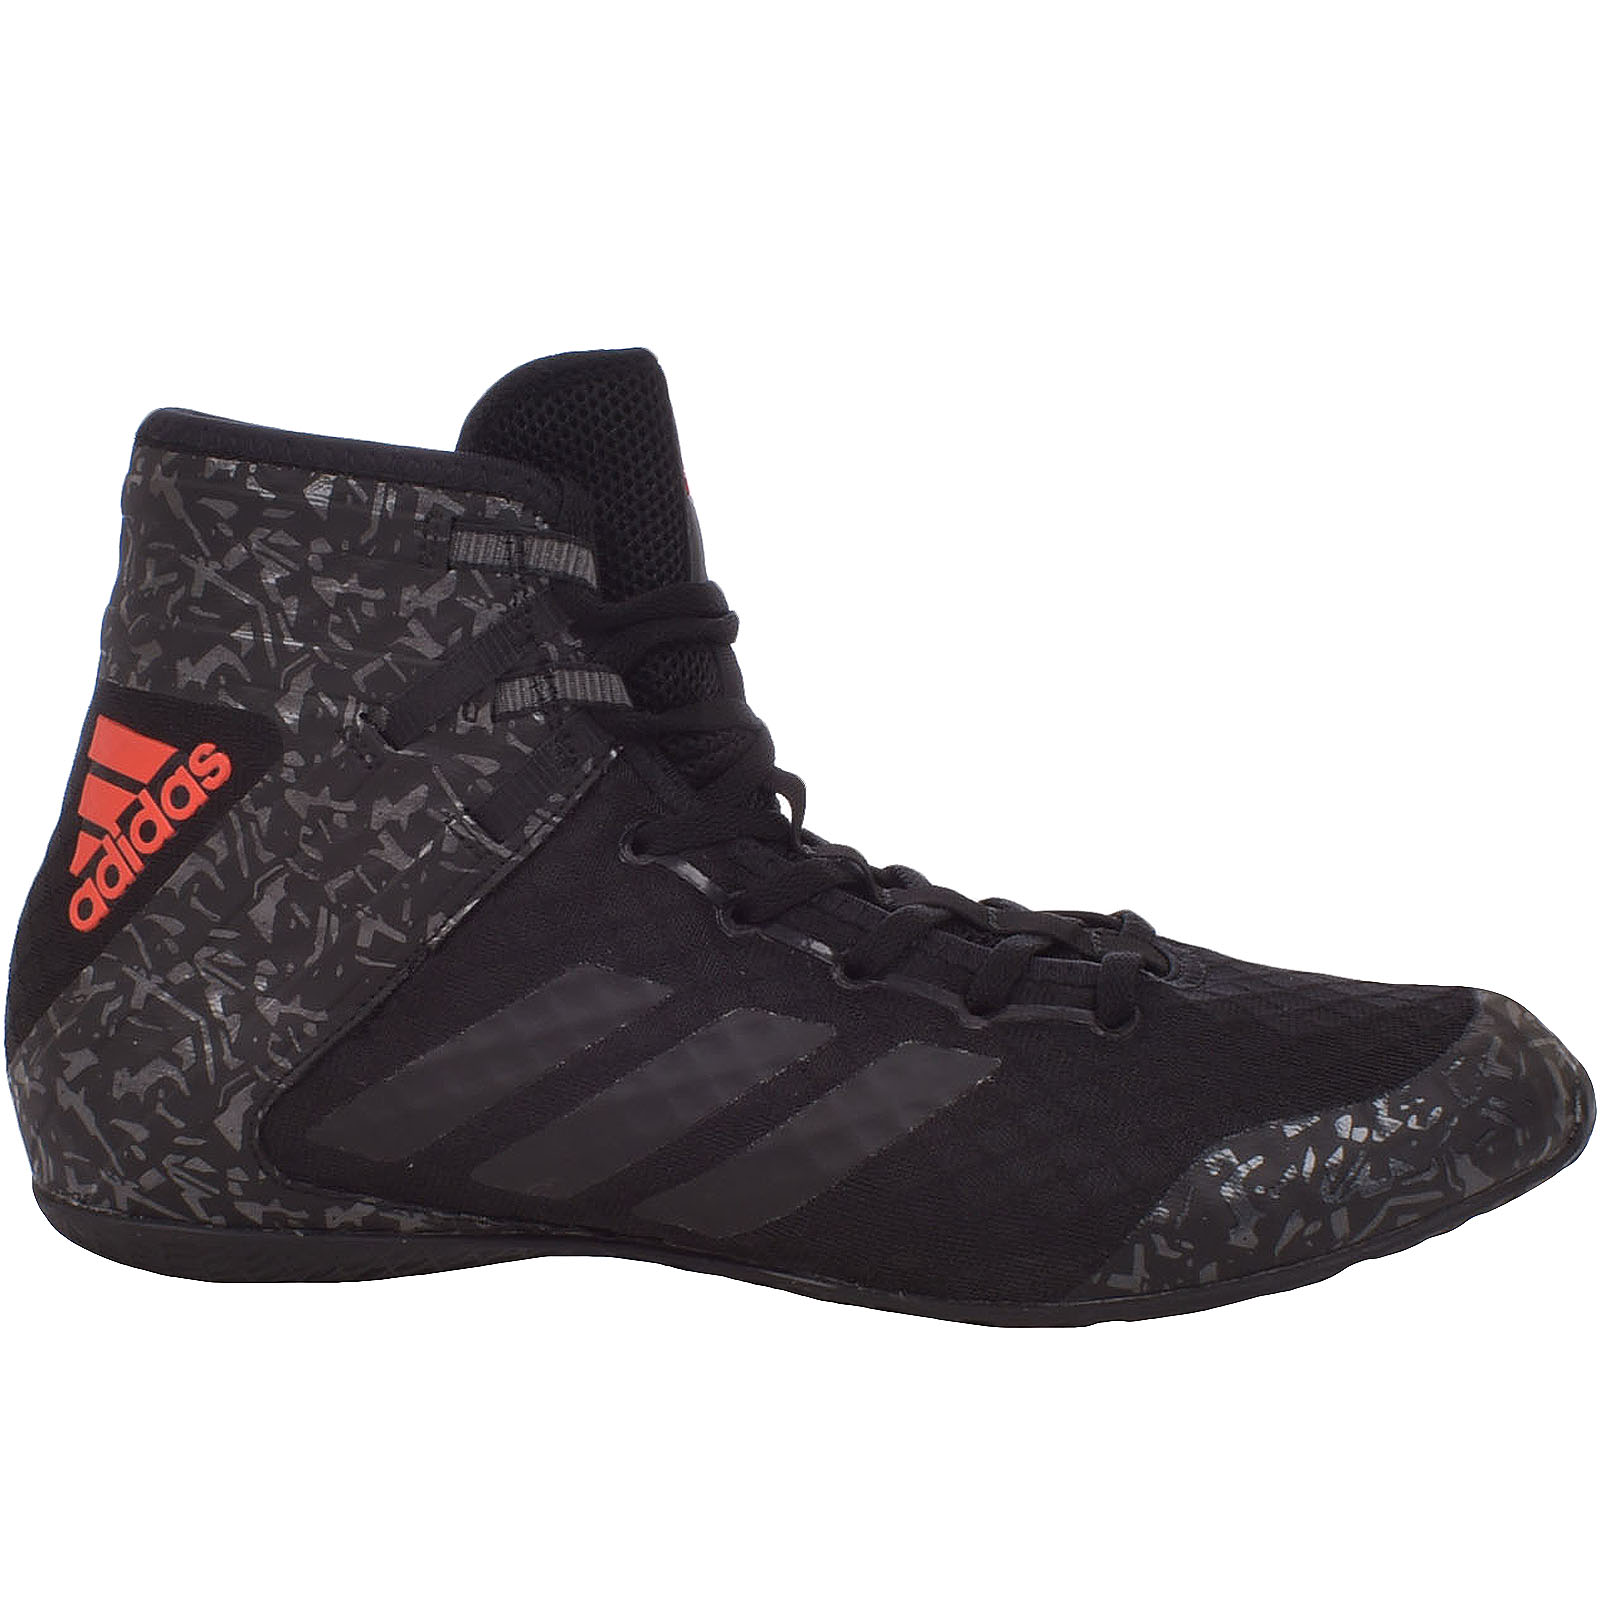 7574273a7b8e Details about adidas Performance Mens Speedex 16.1 City Pack Lace Up Sports  Boxing Shoes-Black